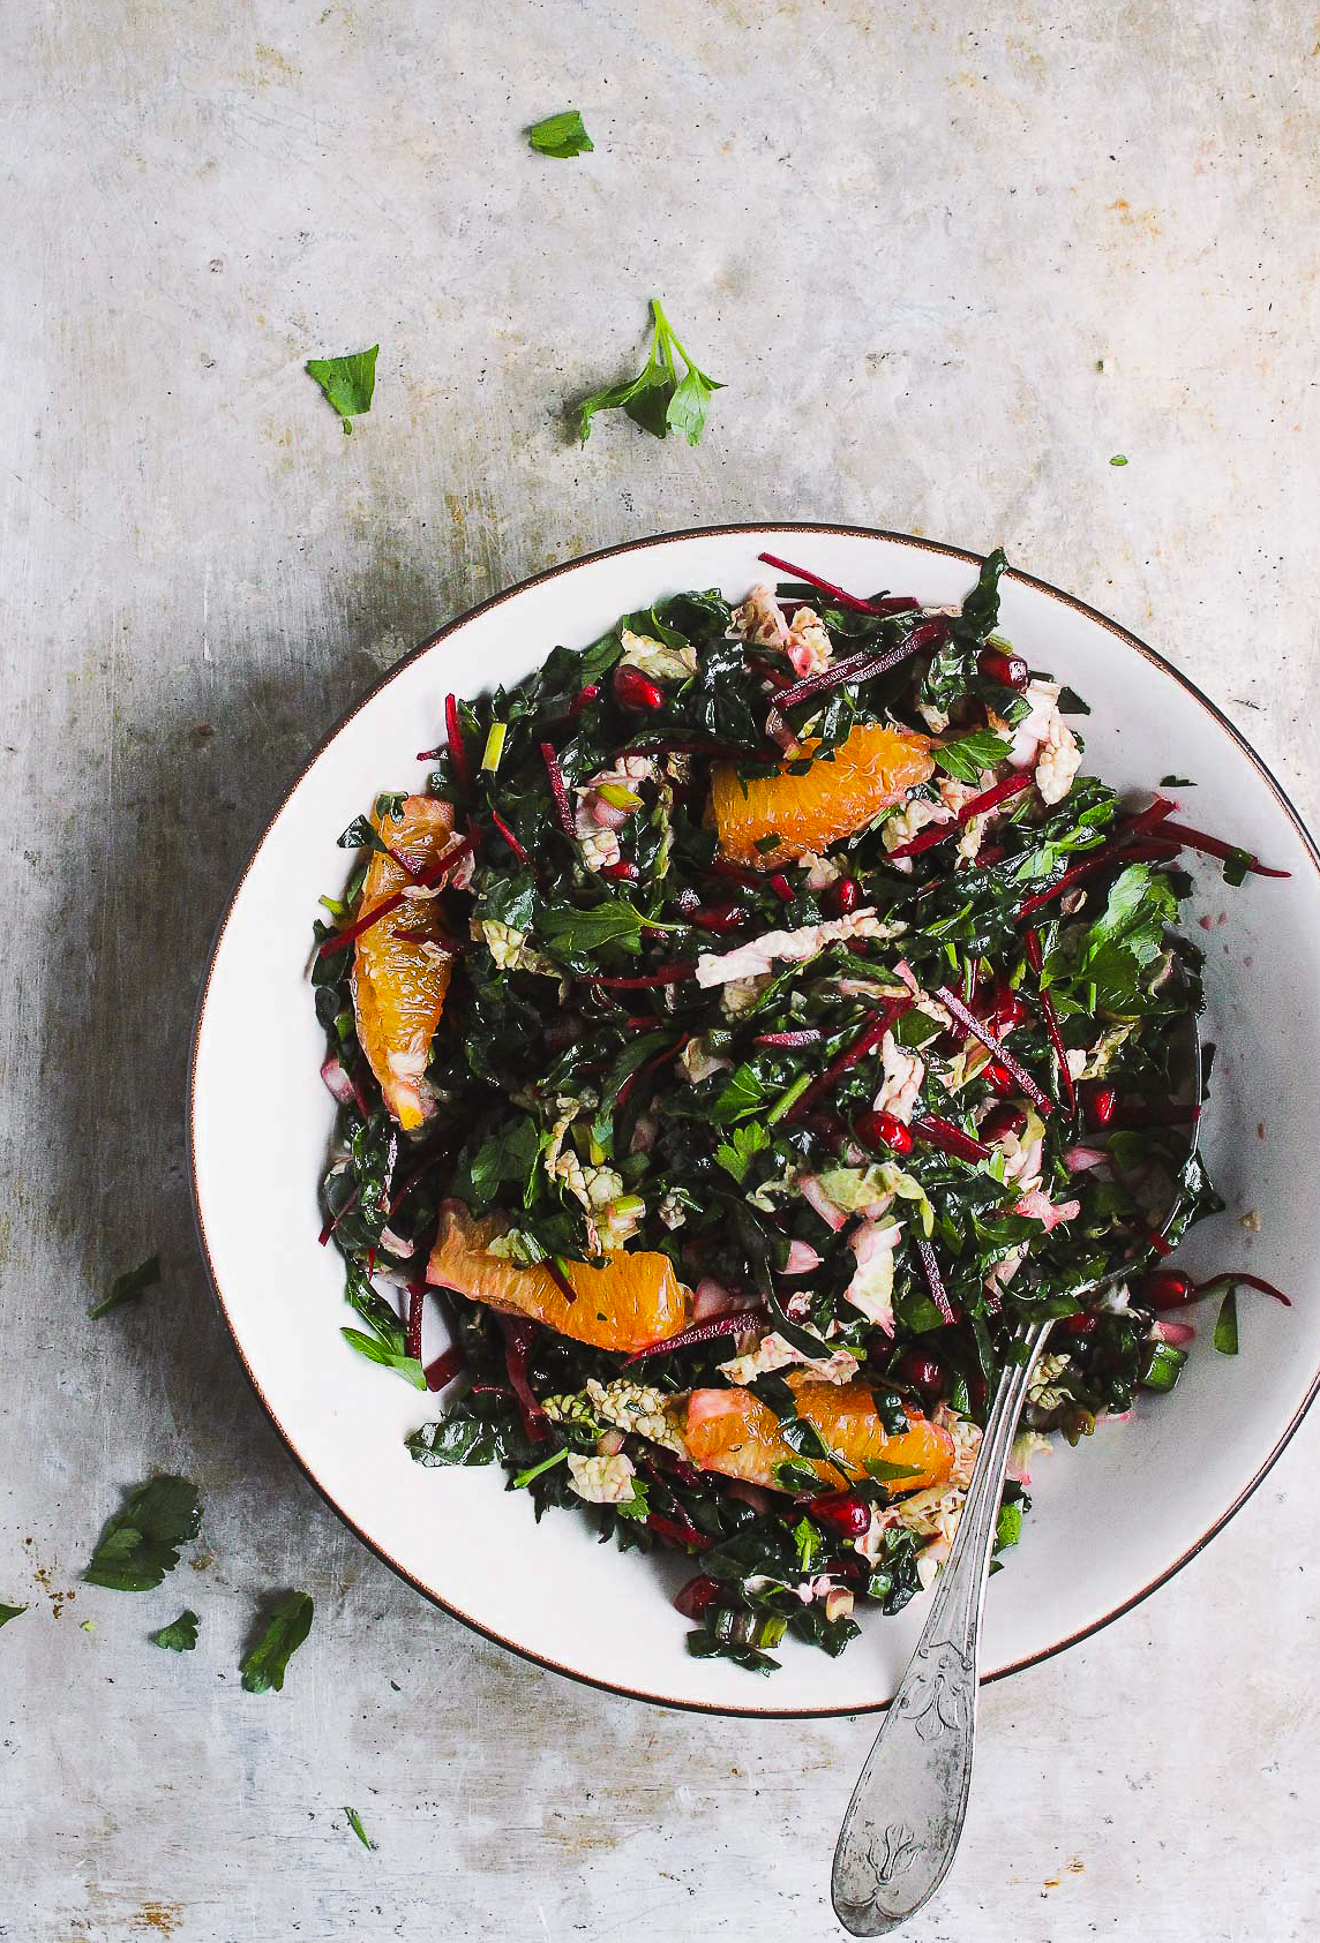 Winter Chopped Kale Salad with Citrus Vinaigrette